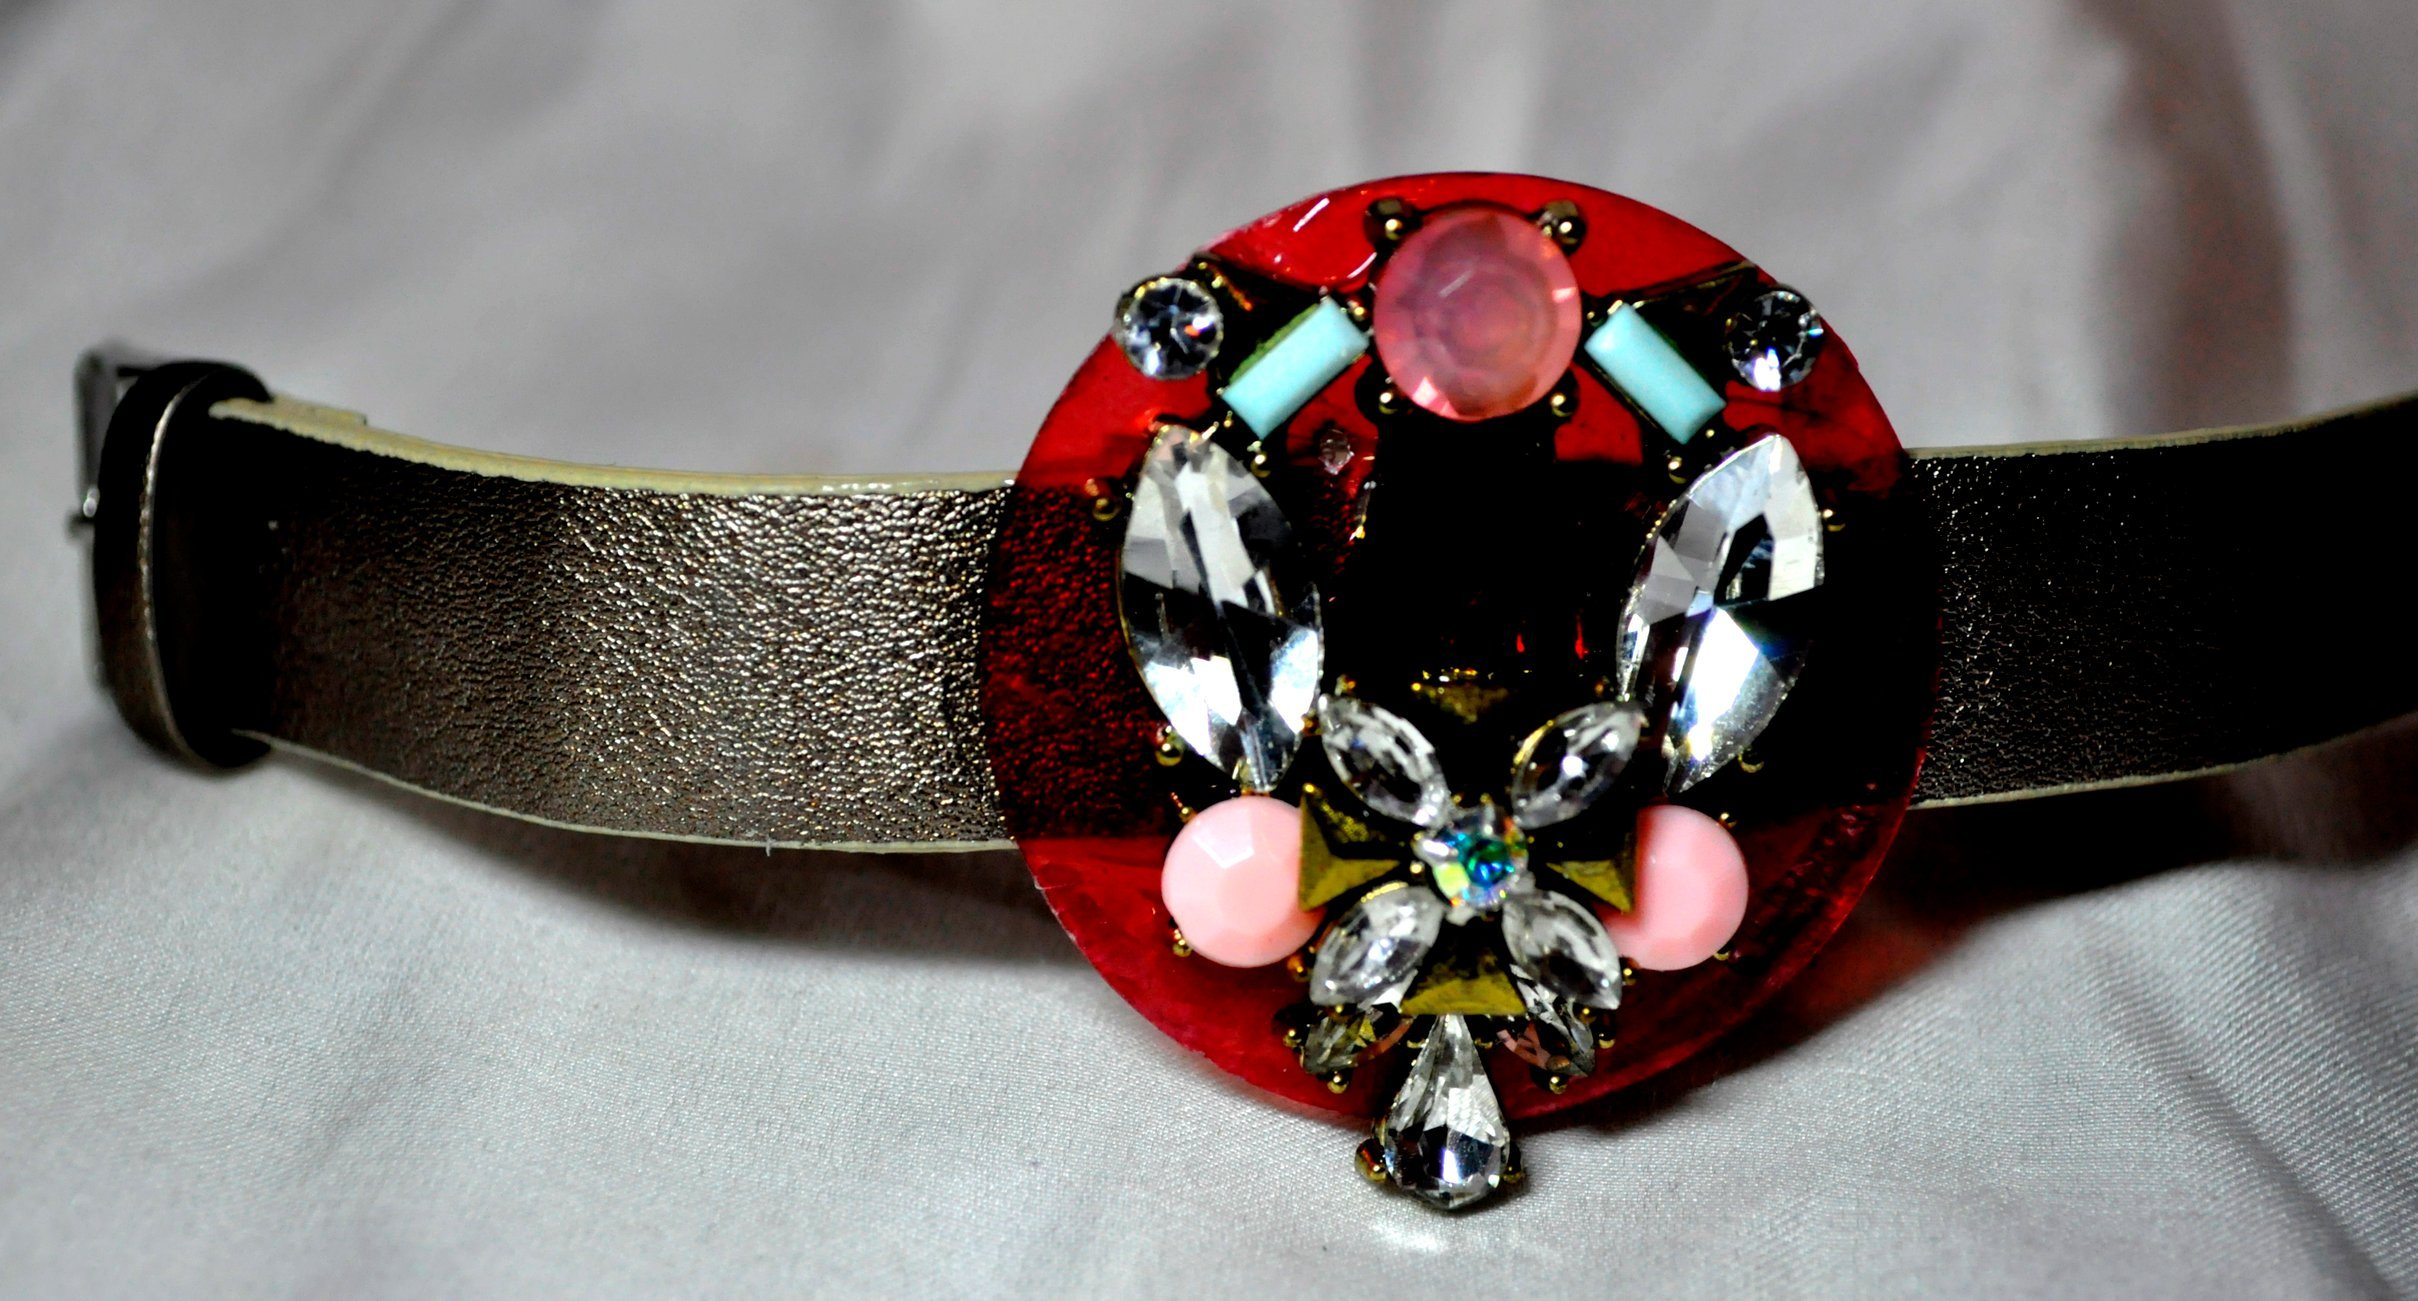 WATCHBAND ADORNED WITH BEAD WORK